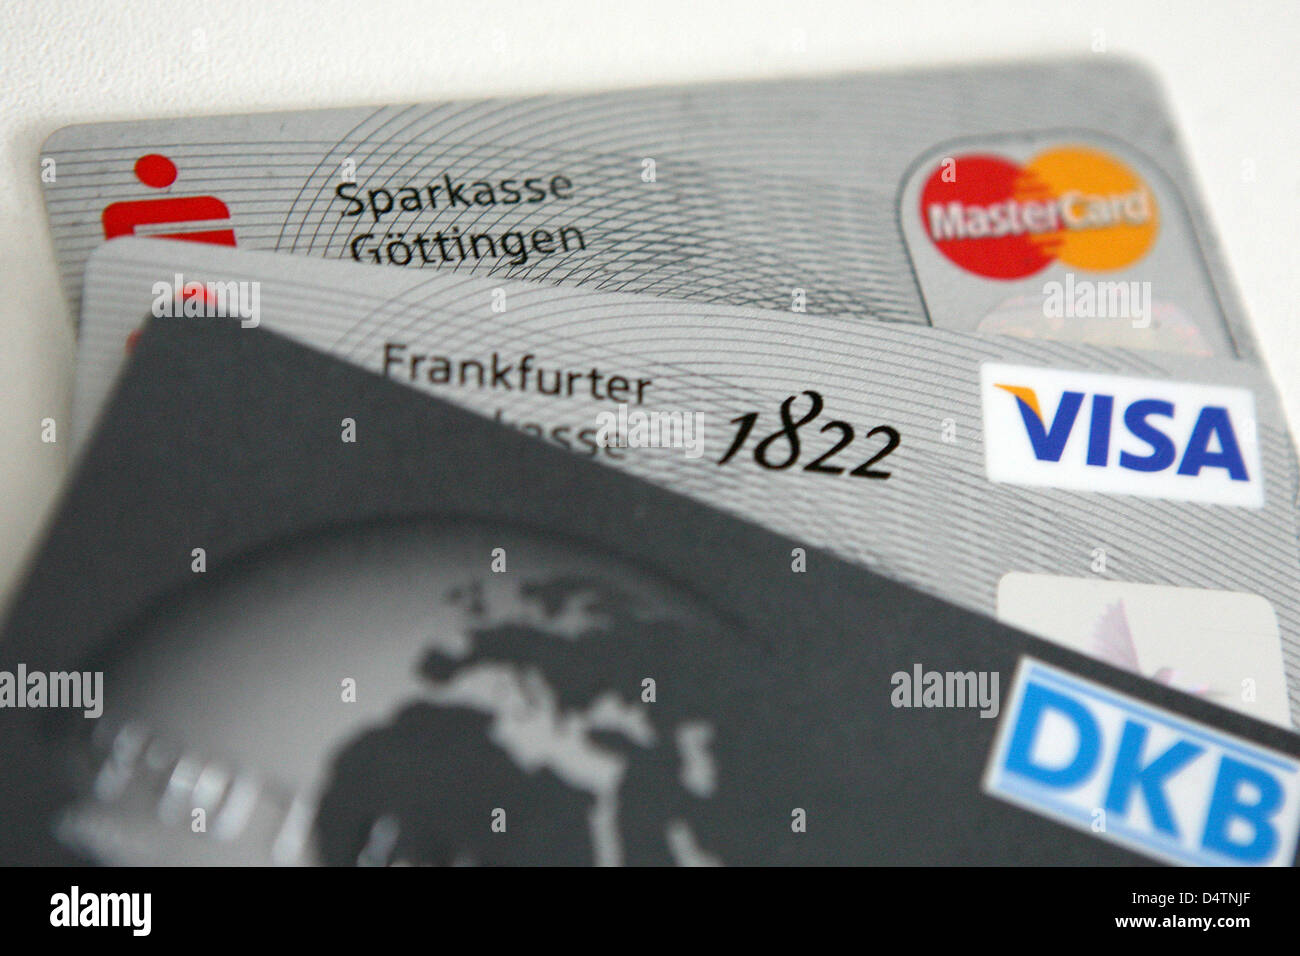 sparkasse göttingen online banking log in